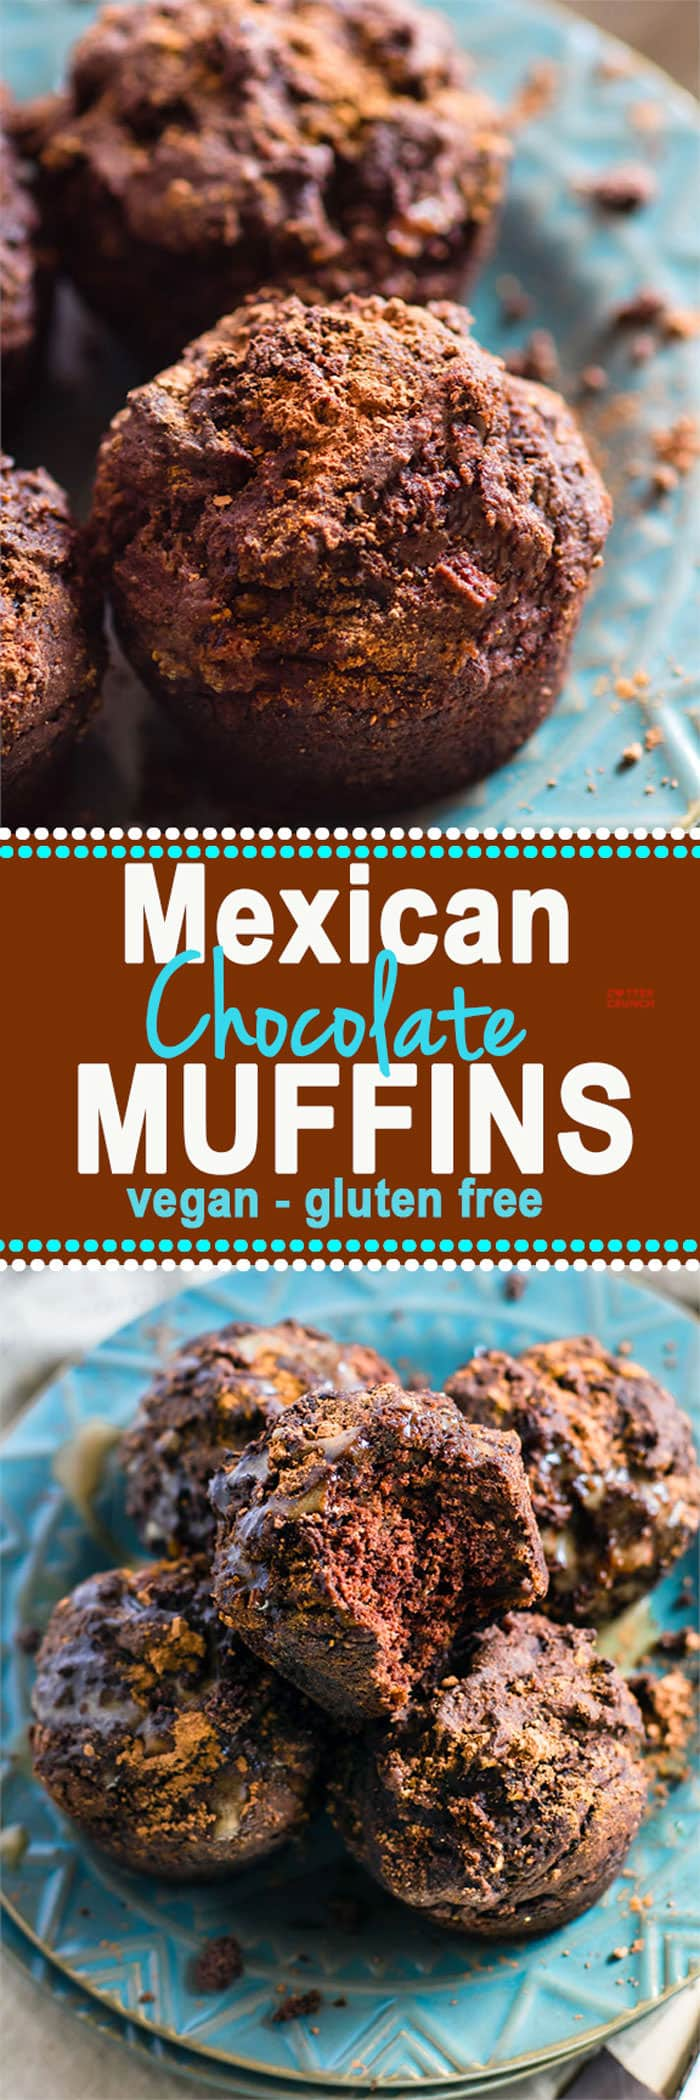 SO delicious Healthy Mexican Chocolate Gluten Free Muffins! Superfood Mexican Chocolate made even healthier and packed in tasty vegan gluten free muffins! Rich flavors but lightly sweet and packed with nourishment. Great for breakfast, brunch, or anytime!